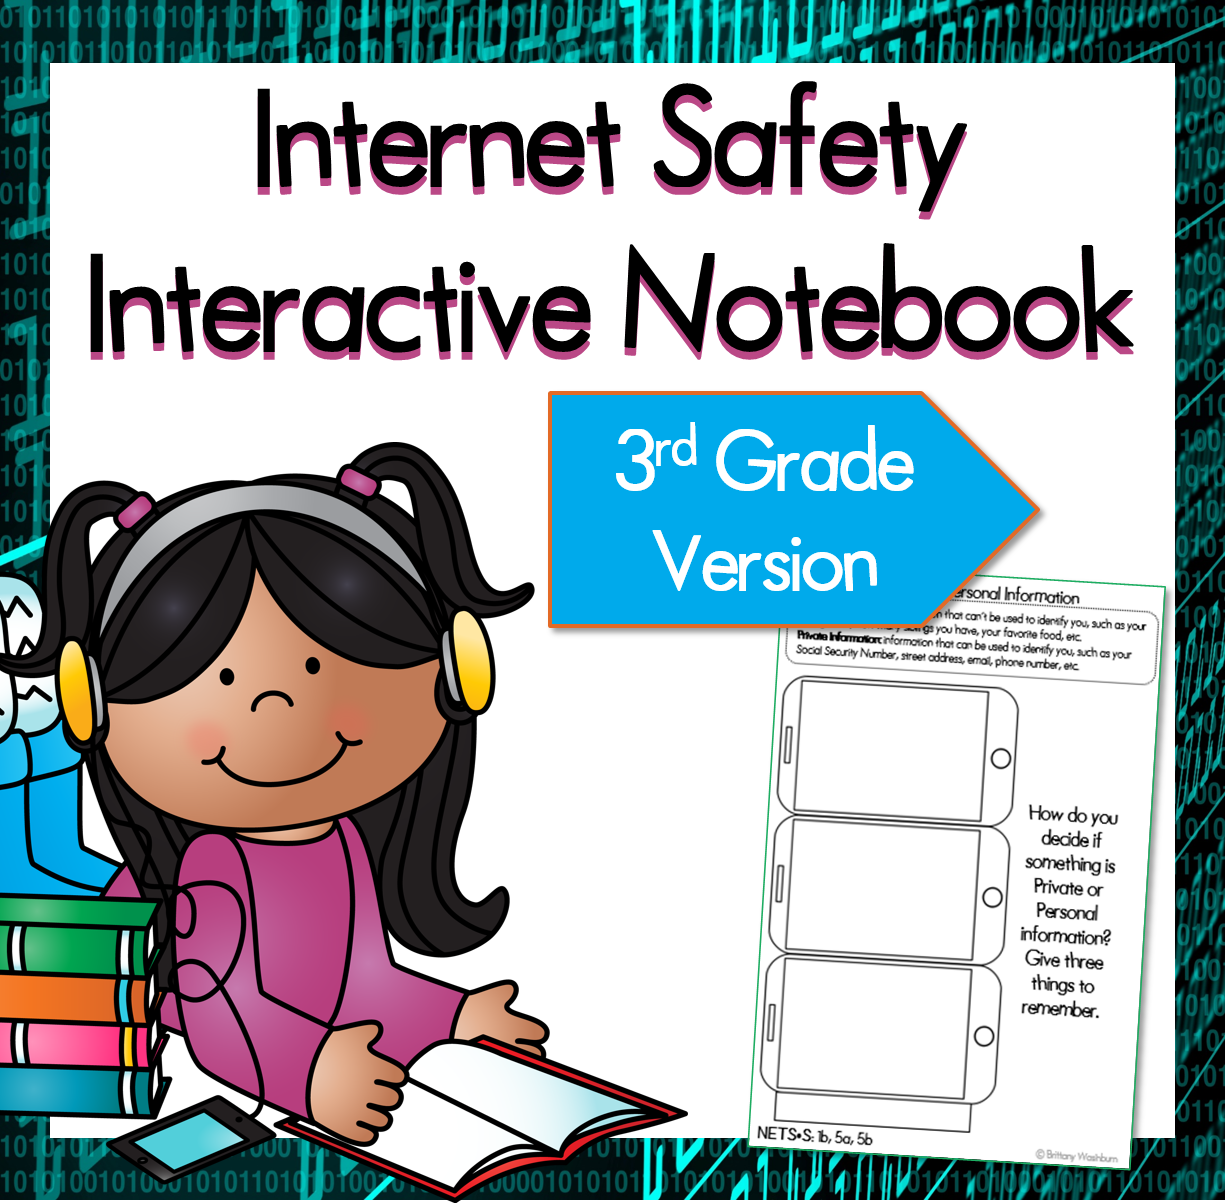 Internet Safety Interactive Notebook Pages 3rd Grade